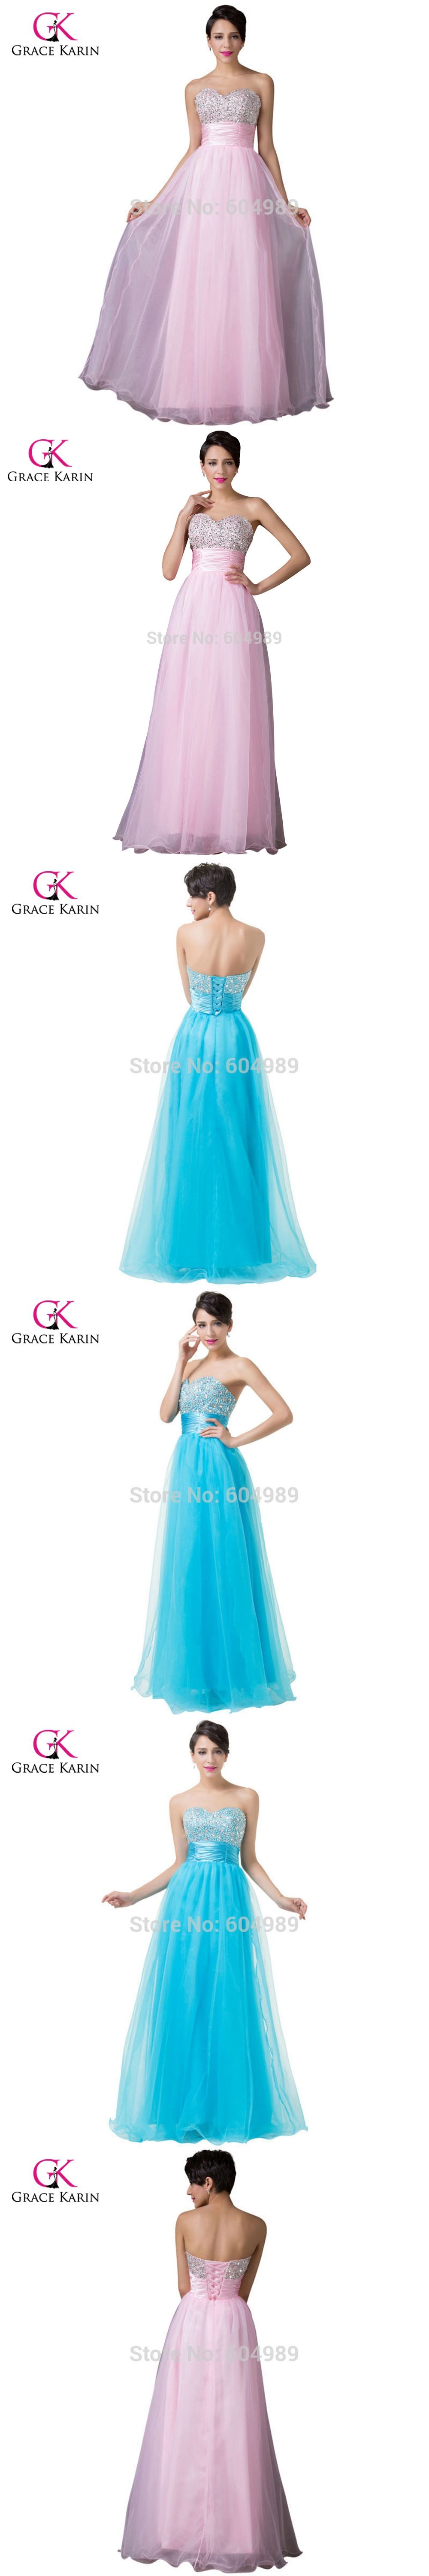 Grace Karin New Arrival Free Shipping Strapless Sweetheart Beaded Sequins Long Prom Dresses Pink Dark Turquois Prom Dresses Pink Prom Dresses Prom Dresses Long [ 6000 x 1000 Pixel ]